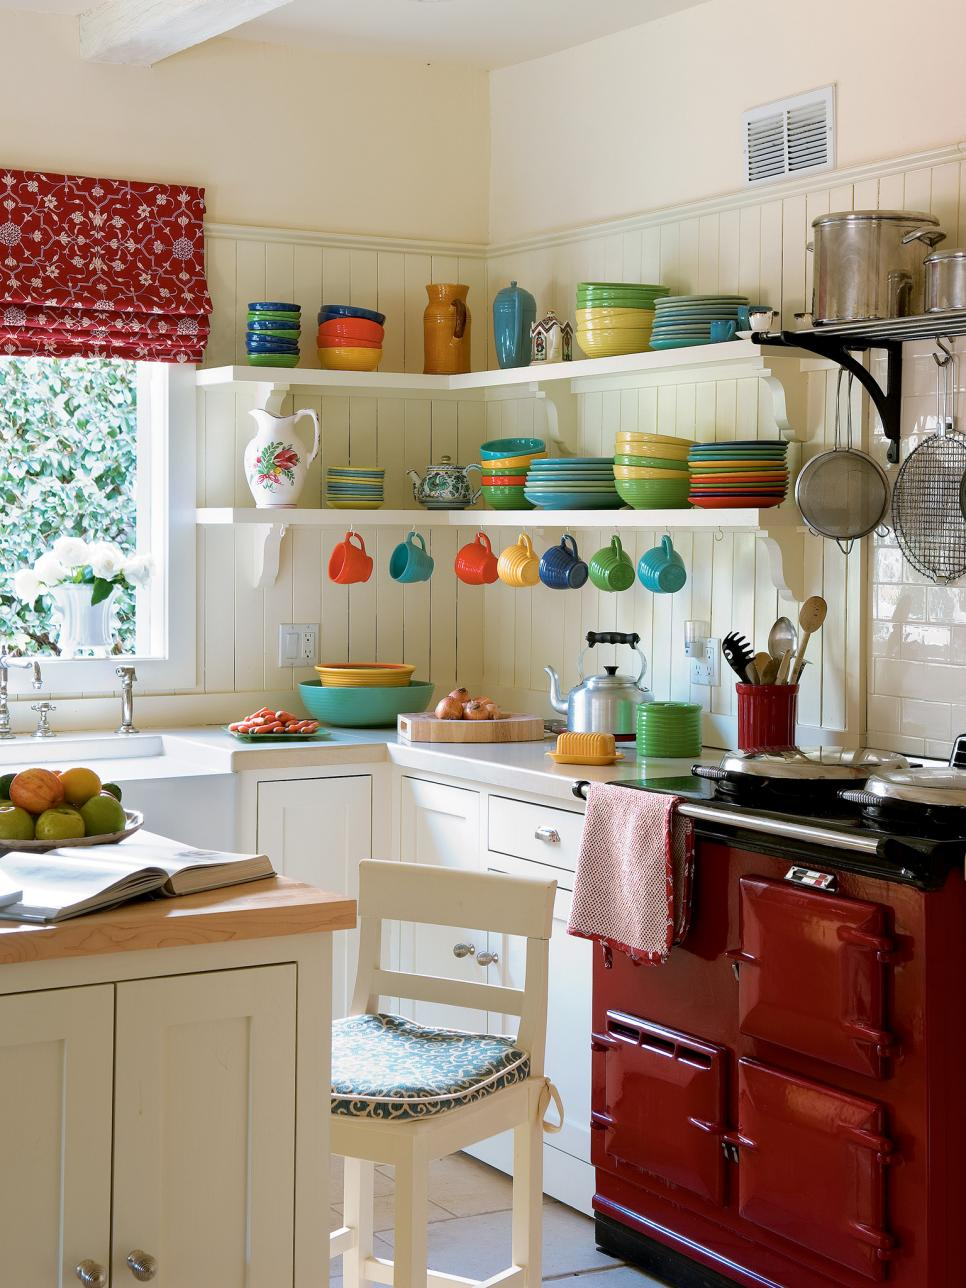 Narrow Kitchen Ideas Home pictures of small kitchen design ideas from hgtv | hgtv